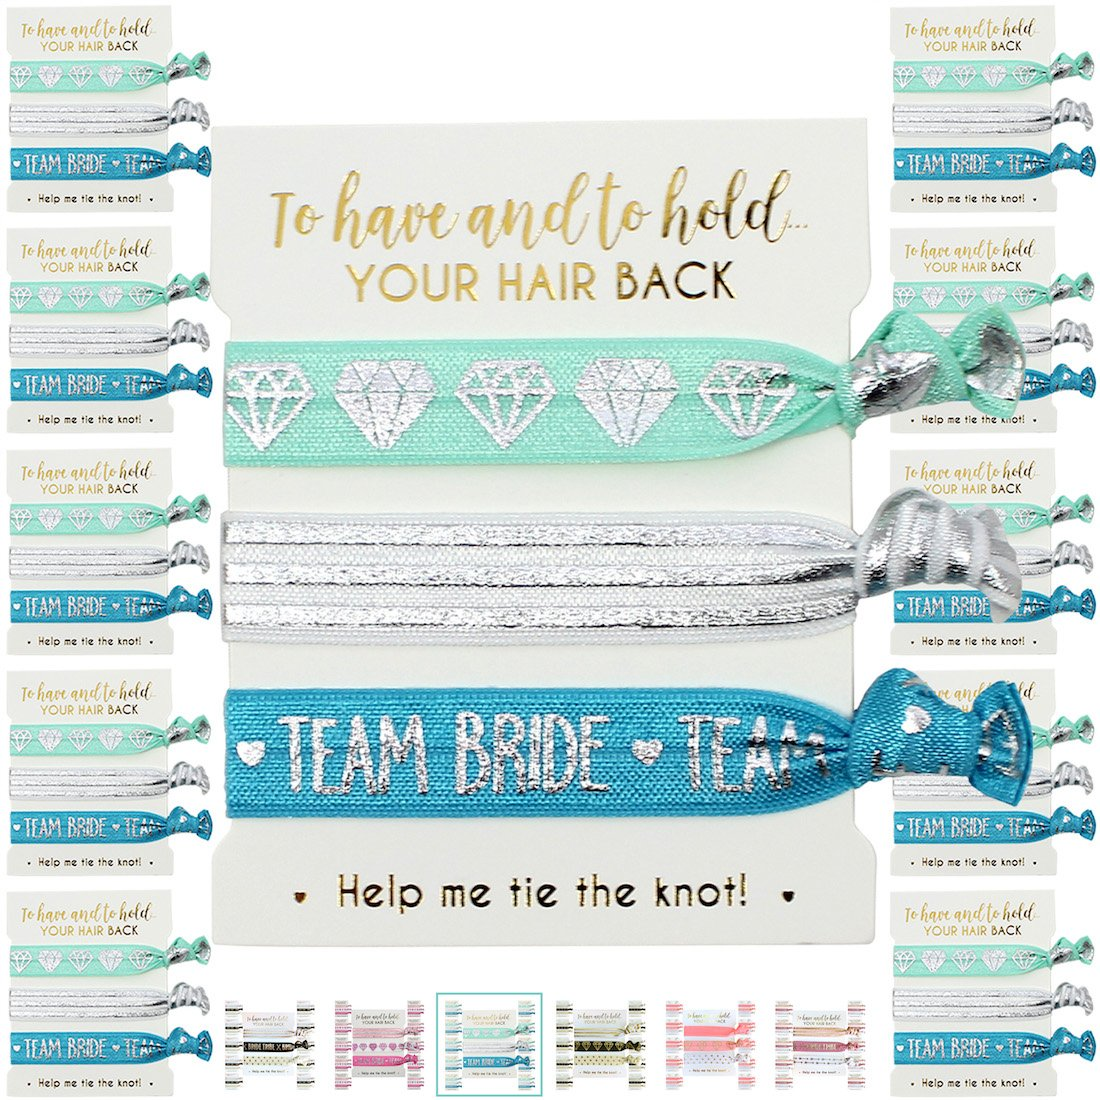 10 x 3-pack Hair Ties - Bachelorette and Wedding Shower Party Favors for Bridesmaids, Team Bride, Bride Tribe - 30 HAIR TIES IN TOTAL! (Aqua & Silver (Team))